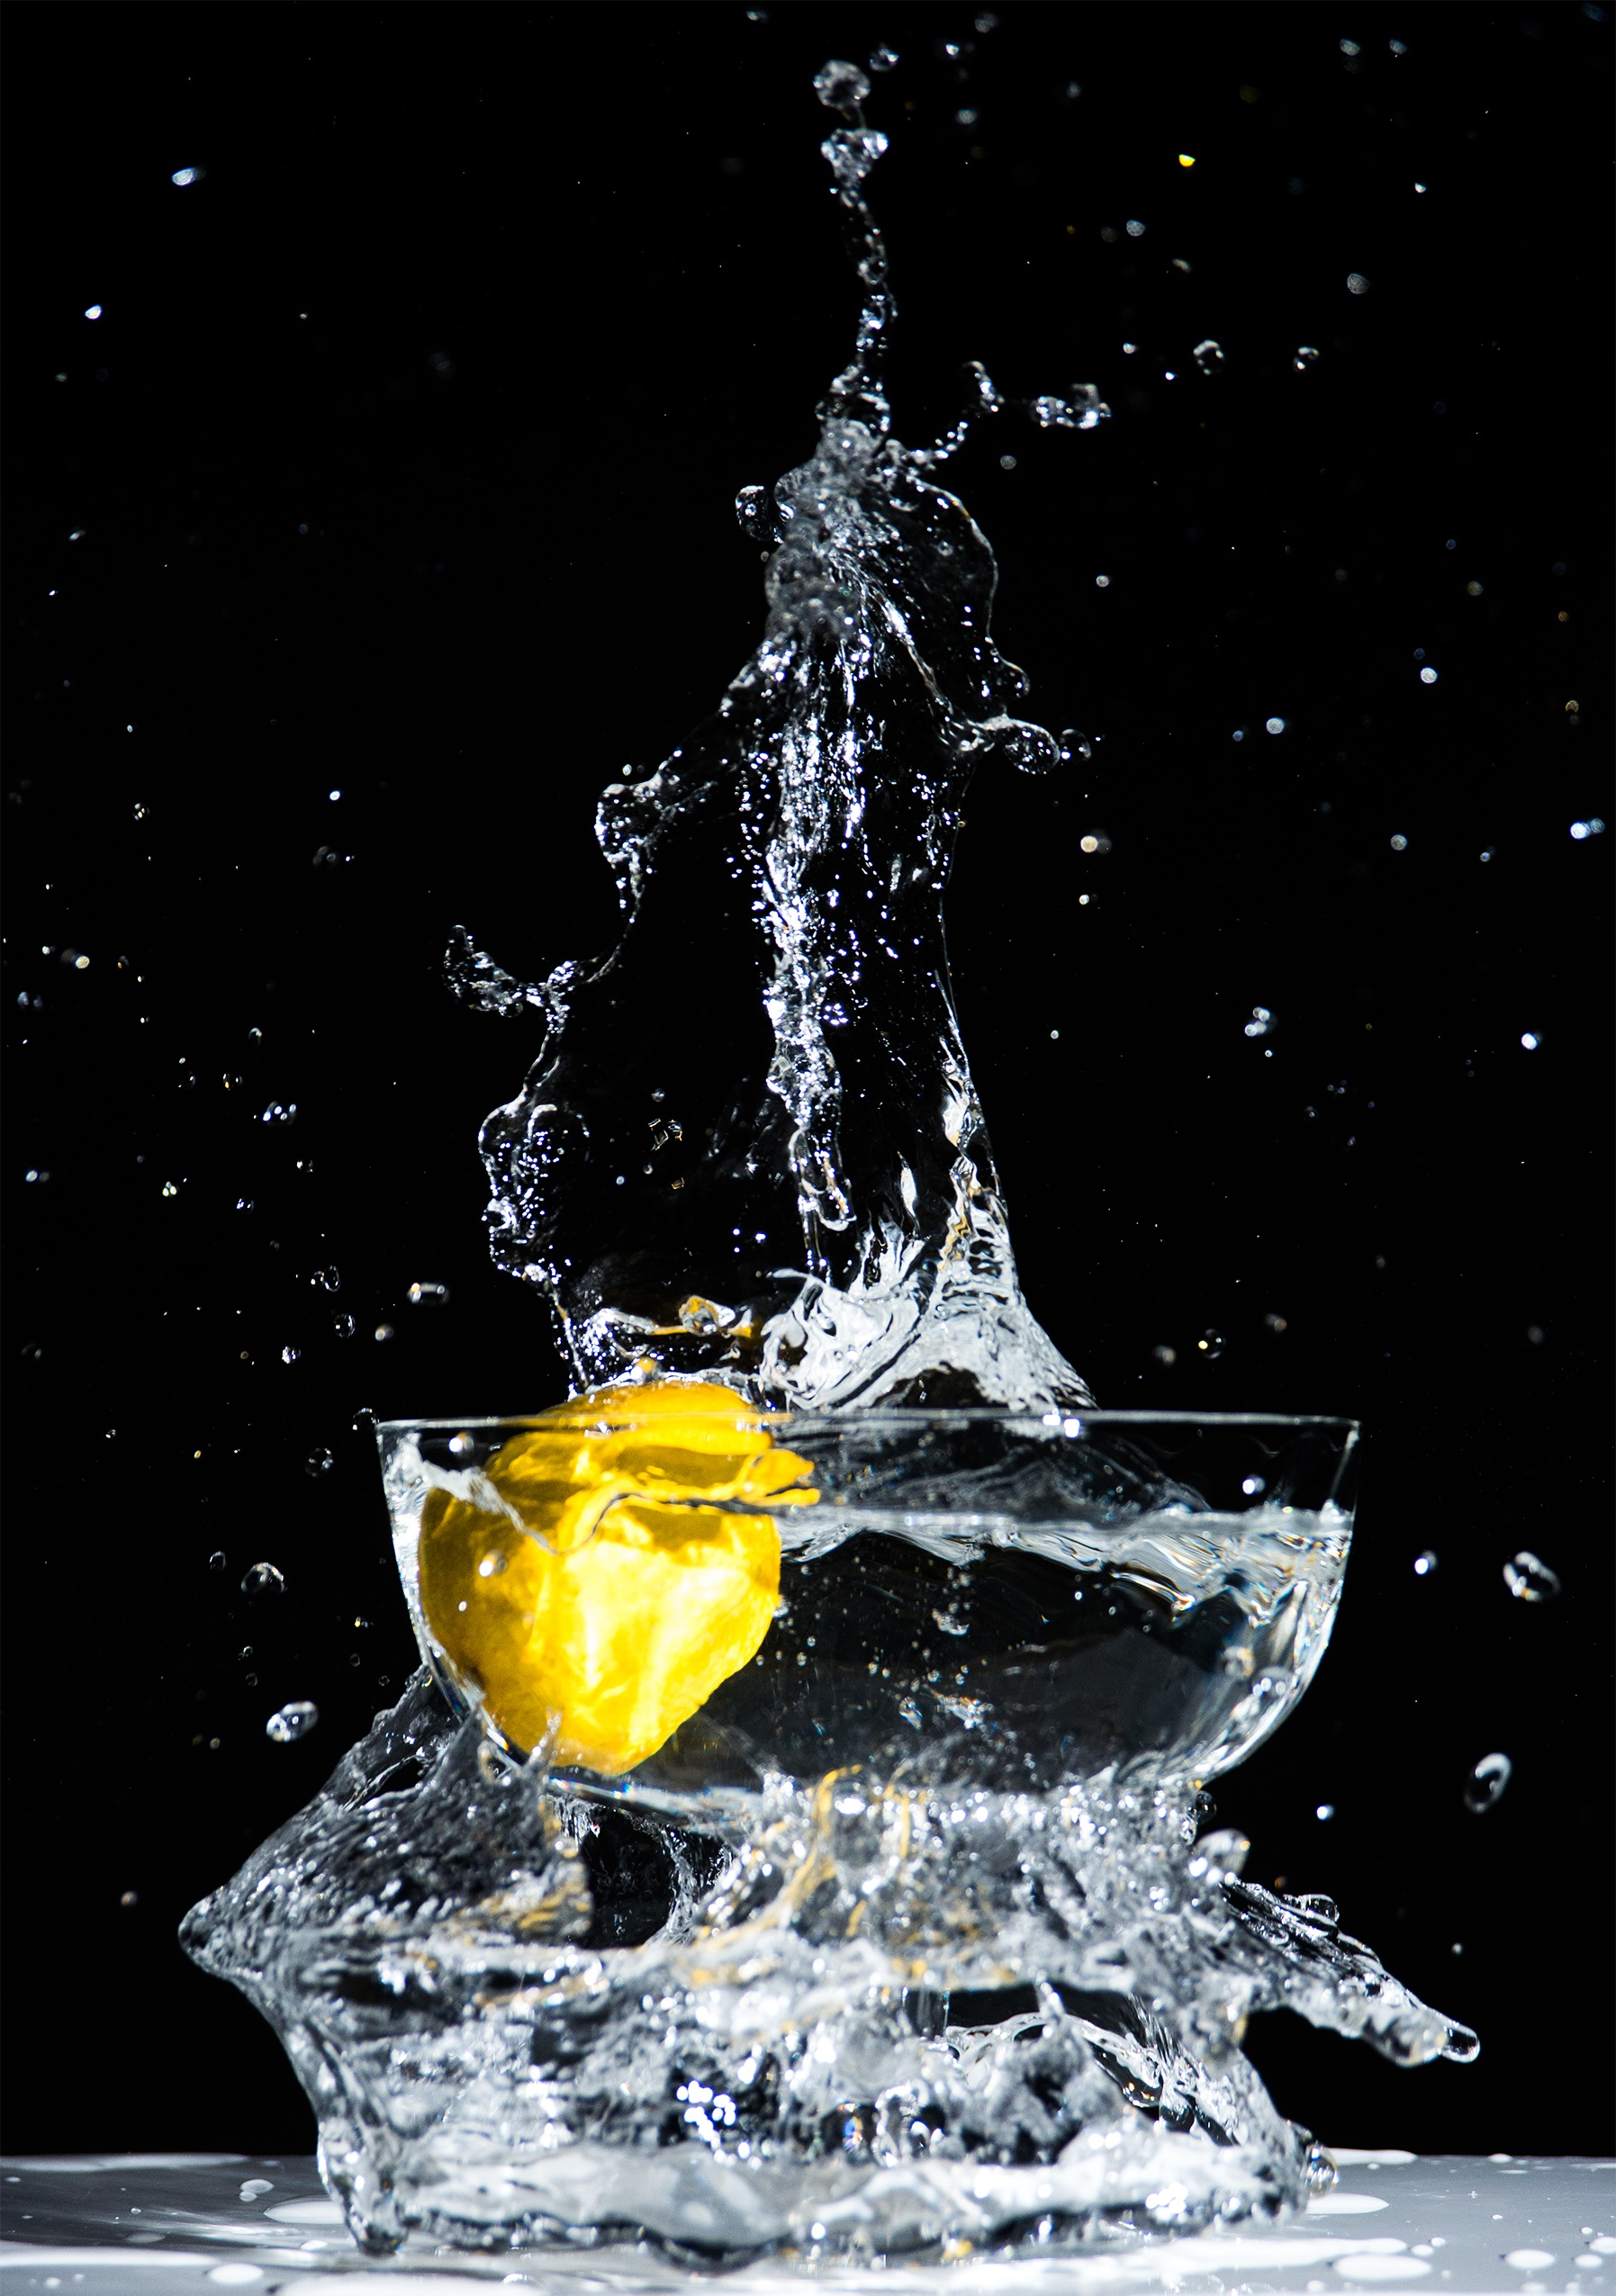 Drinking fresh water saves calories and carbohydrates.